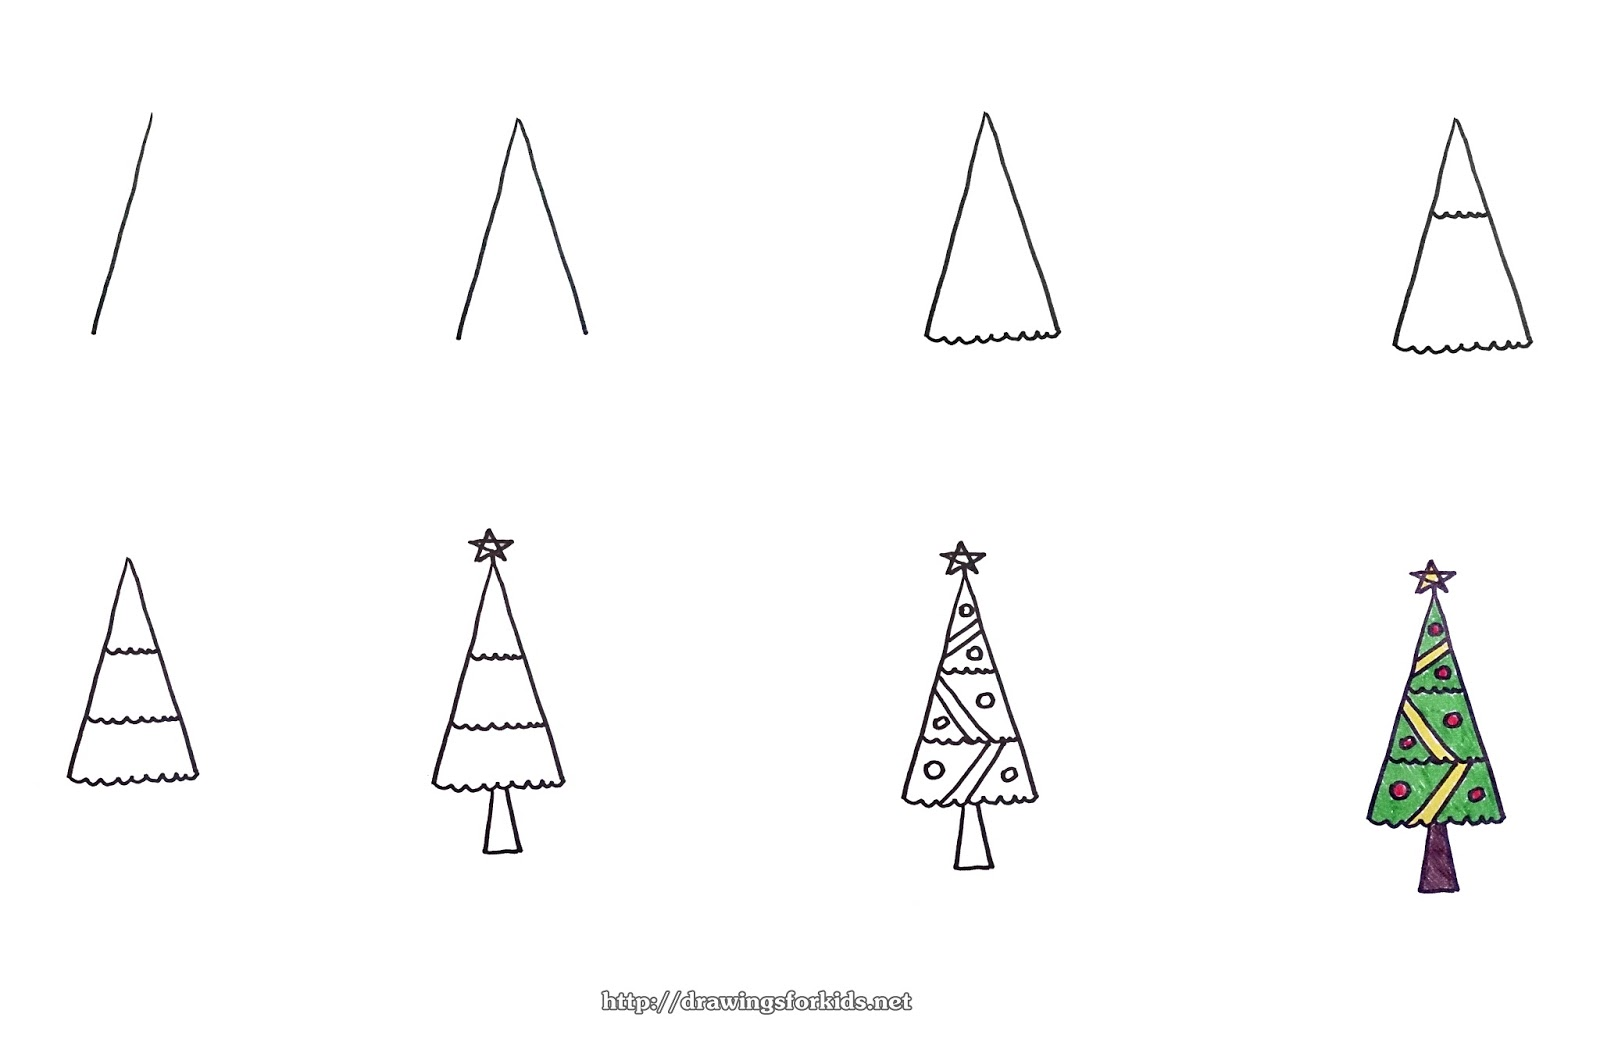 How To Draw A Christmas Tree Step By Step For Beginners.How To Draw A Christmas Tree For Kids Step By Step